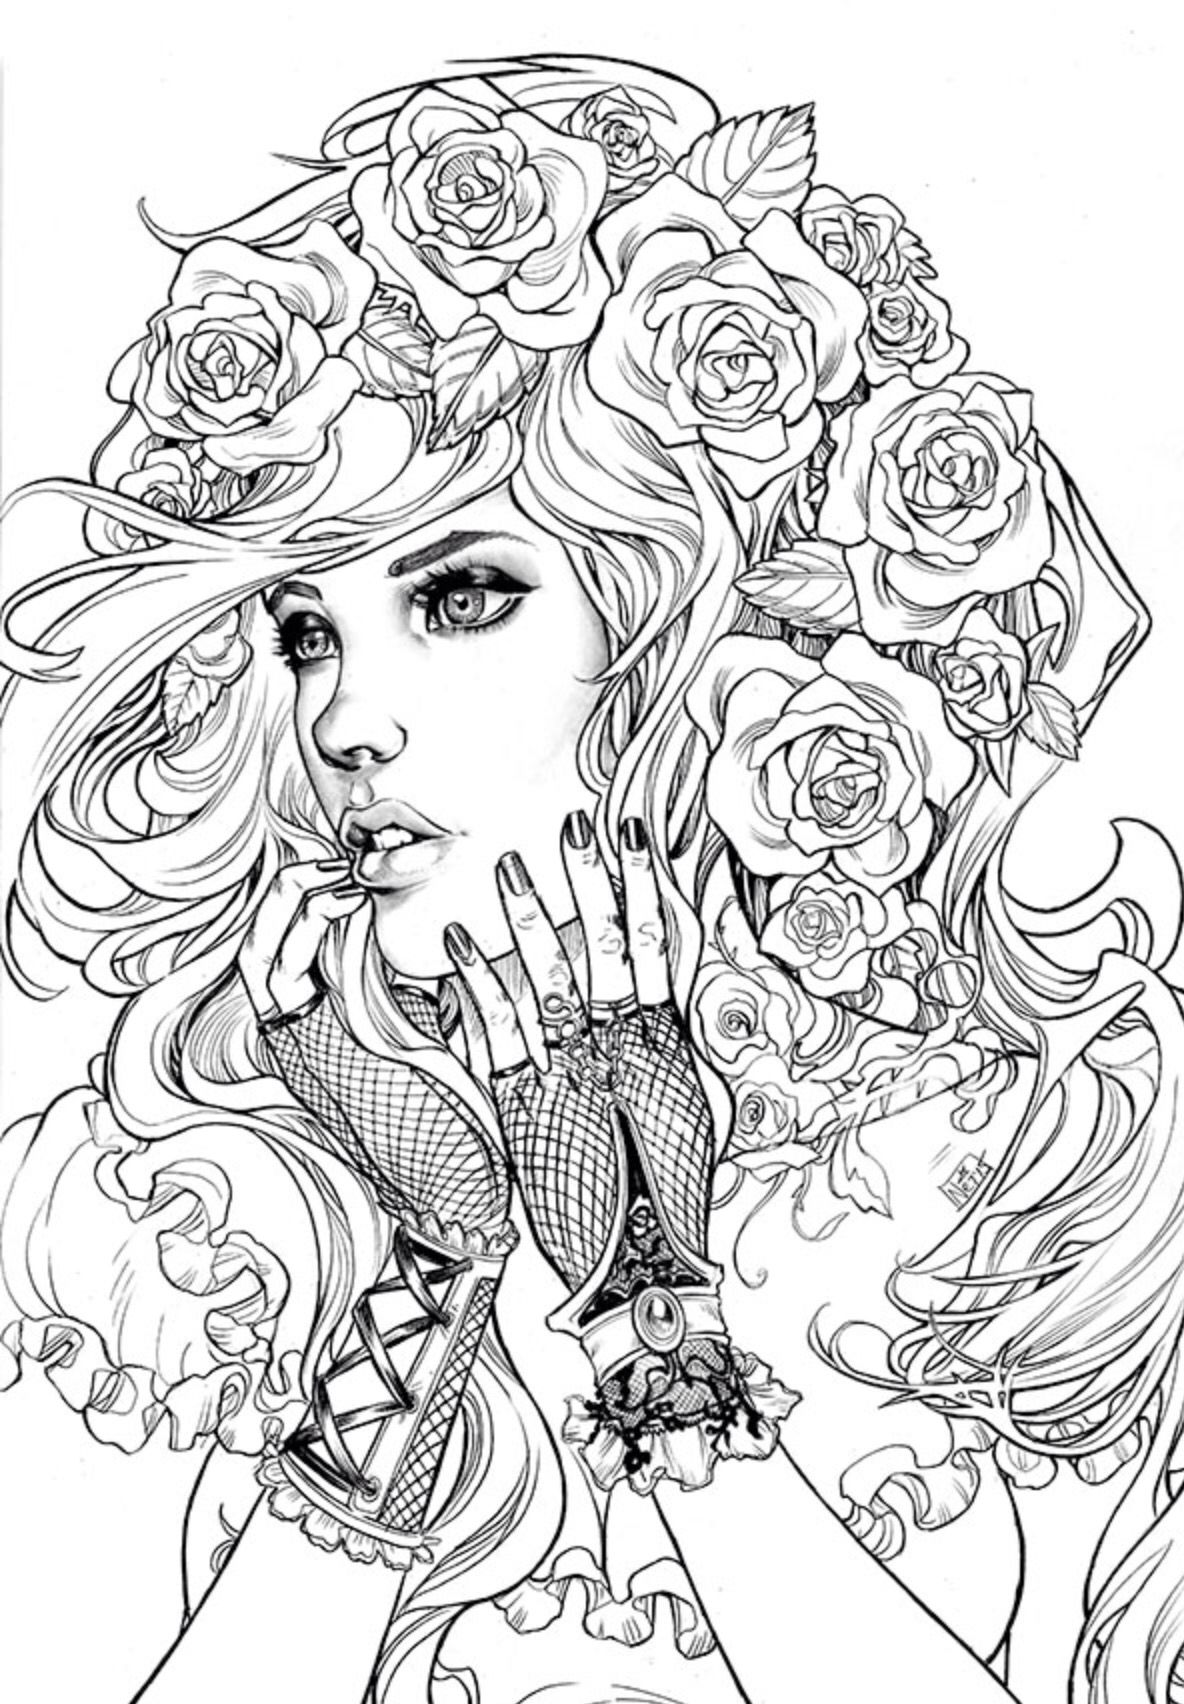 Pin by Amber Kepler on color | Pinterest | Adult coloring, Coloring ...